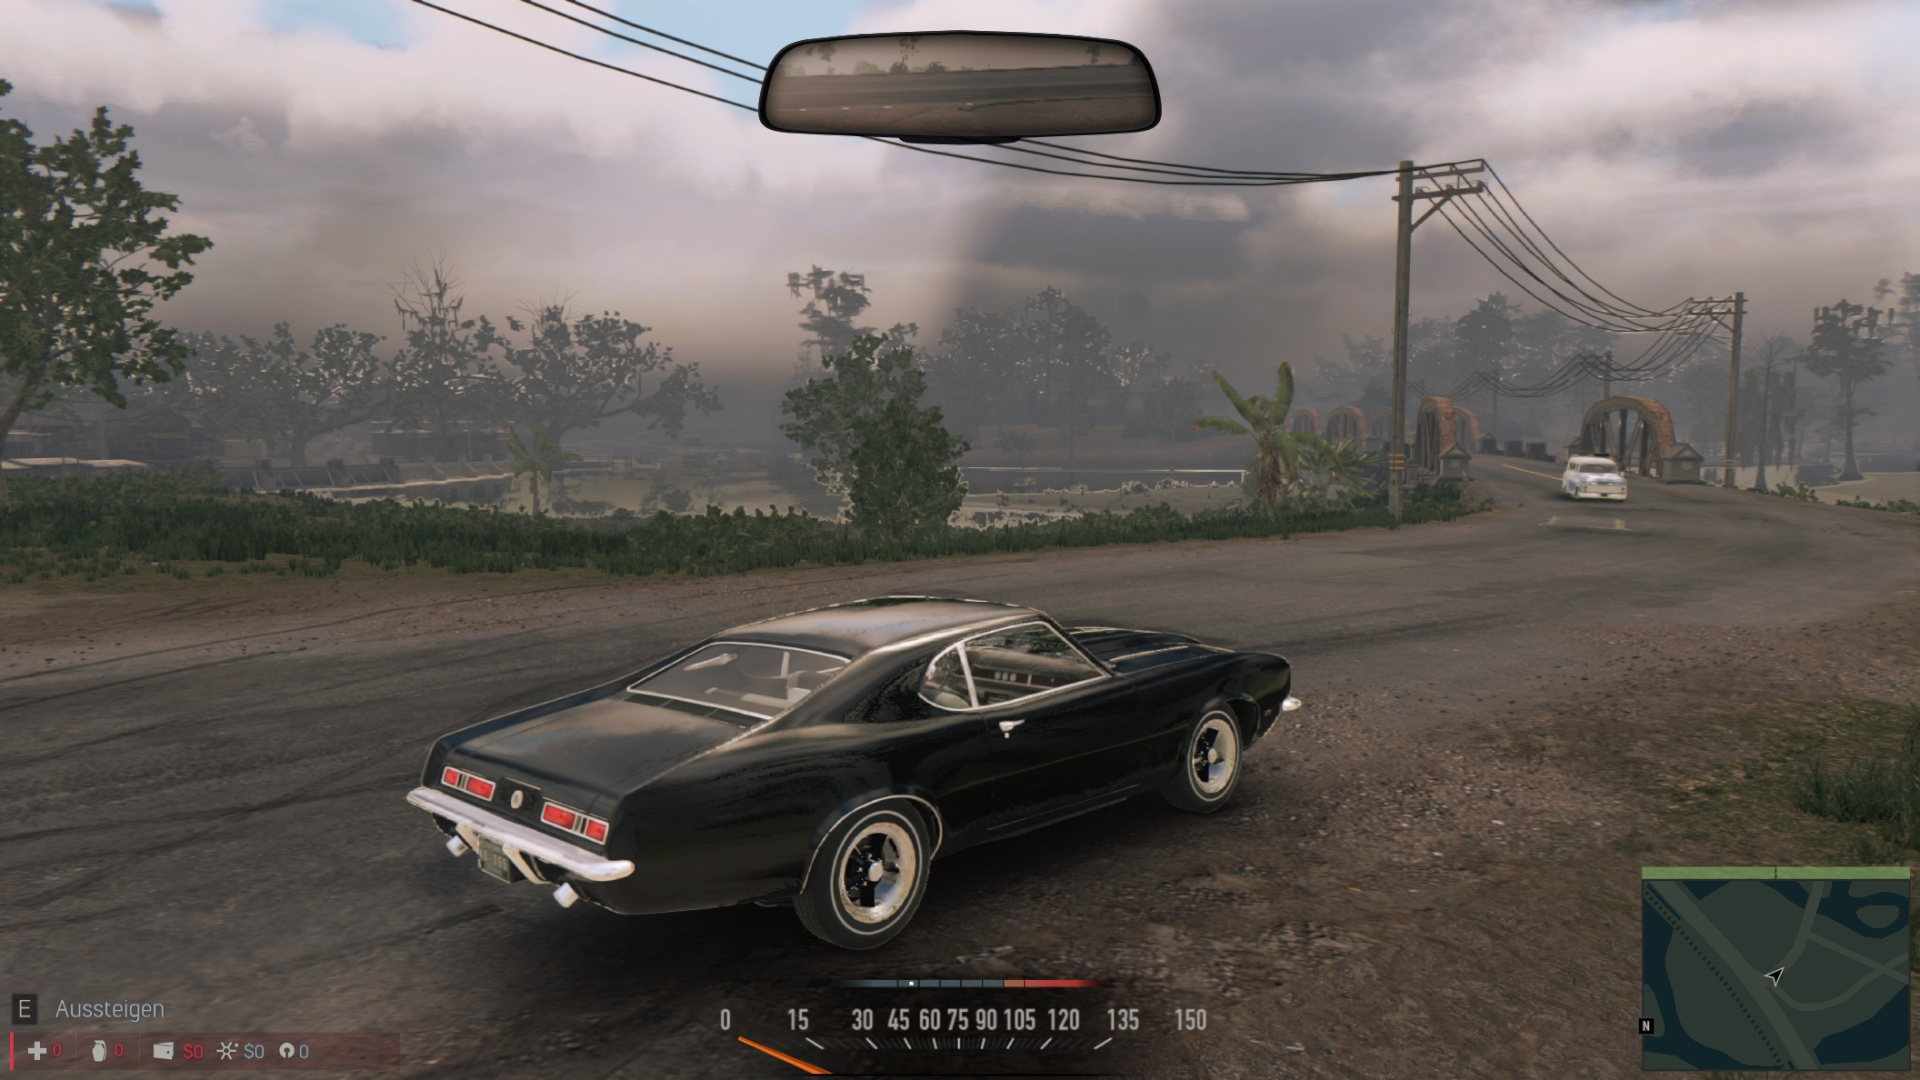 Mafia-3-Temp-Artifacts-1080p-pcgh